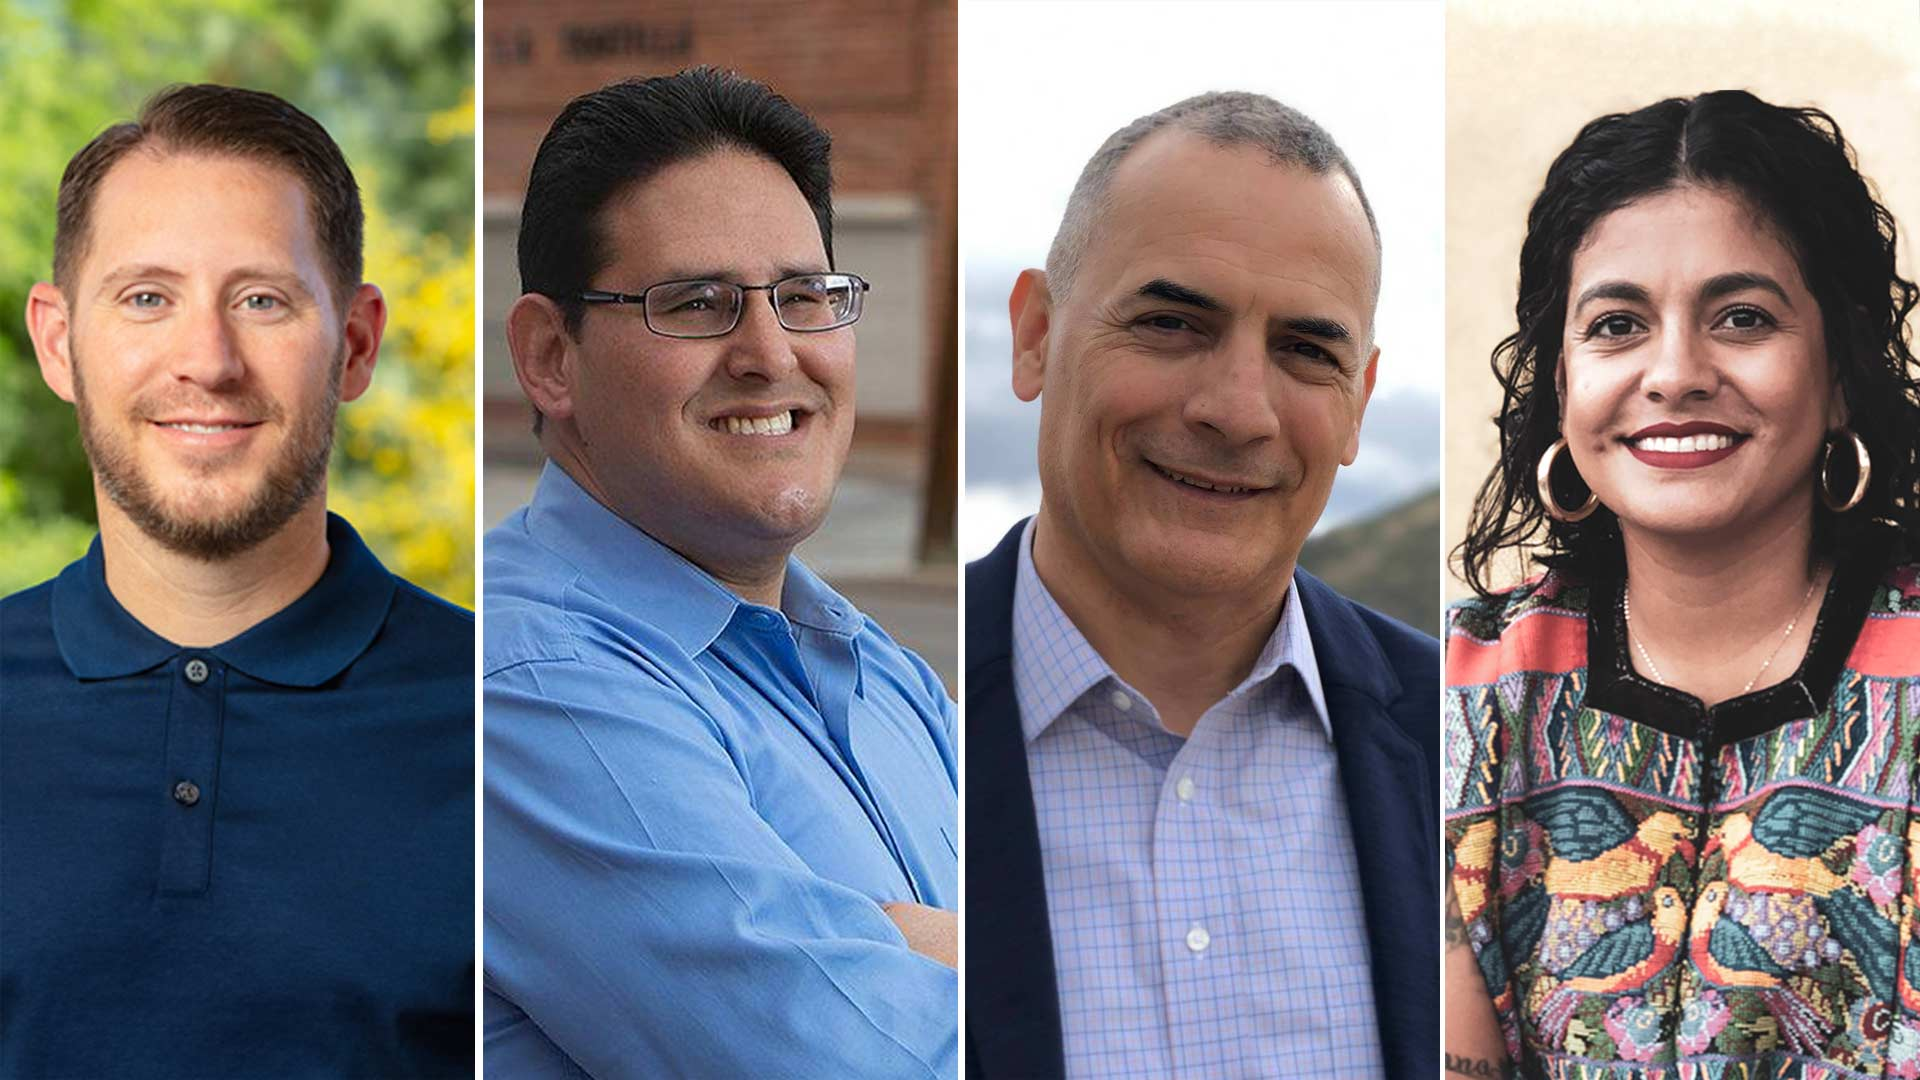 Tucson 2019 Ward 1 Democratic candidates. From left, Rob Elias, Sami Hamed, Miguel Ortega and Lane Santa Cruz.